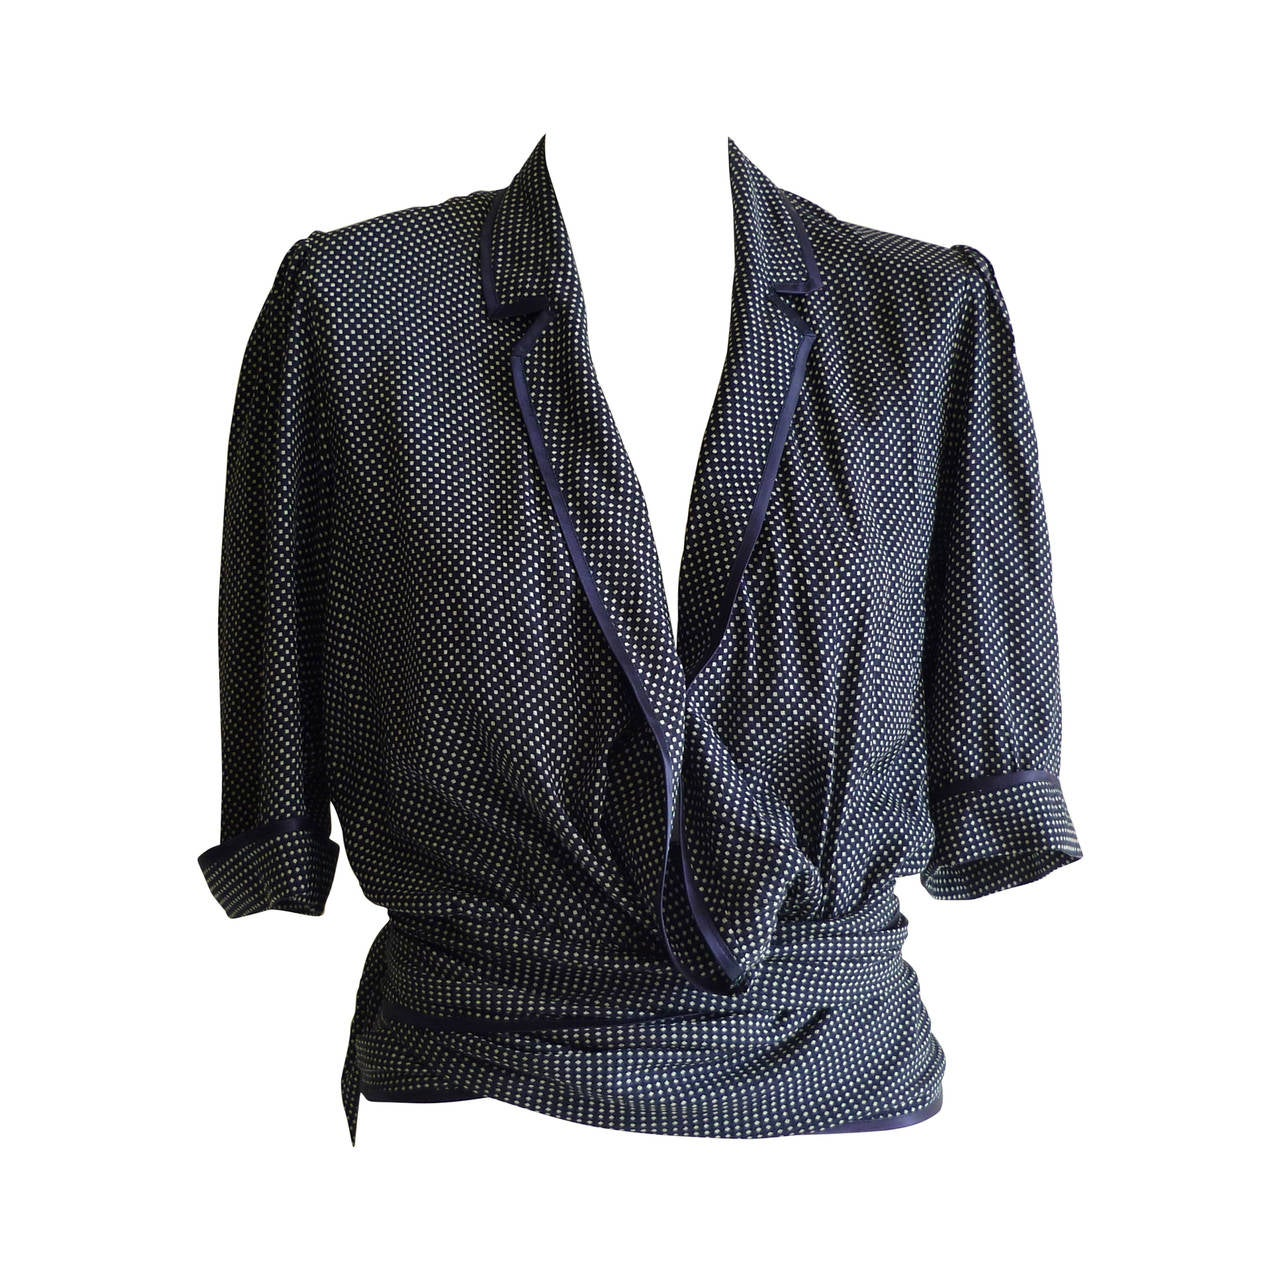 1980s Jean Louis Scherrer Versitile Silk Blouse #279463 For Sale